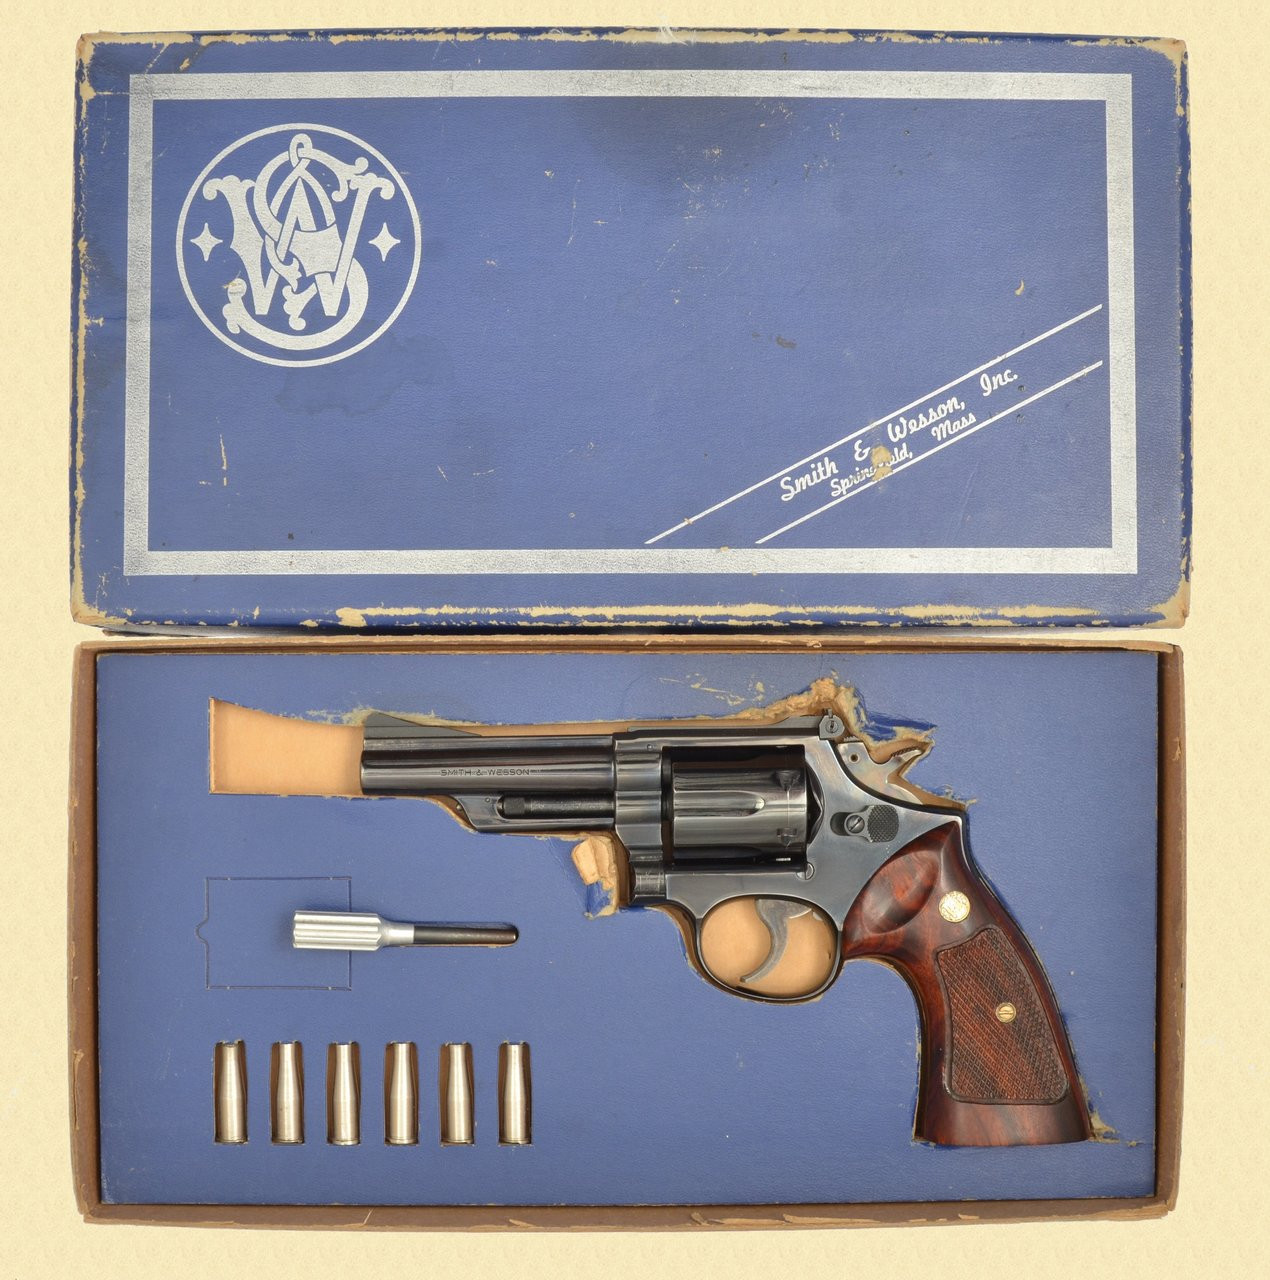 SMITH & WESSON 53 - C30055